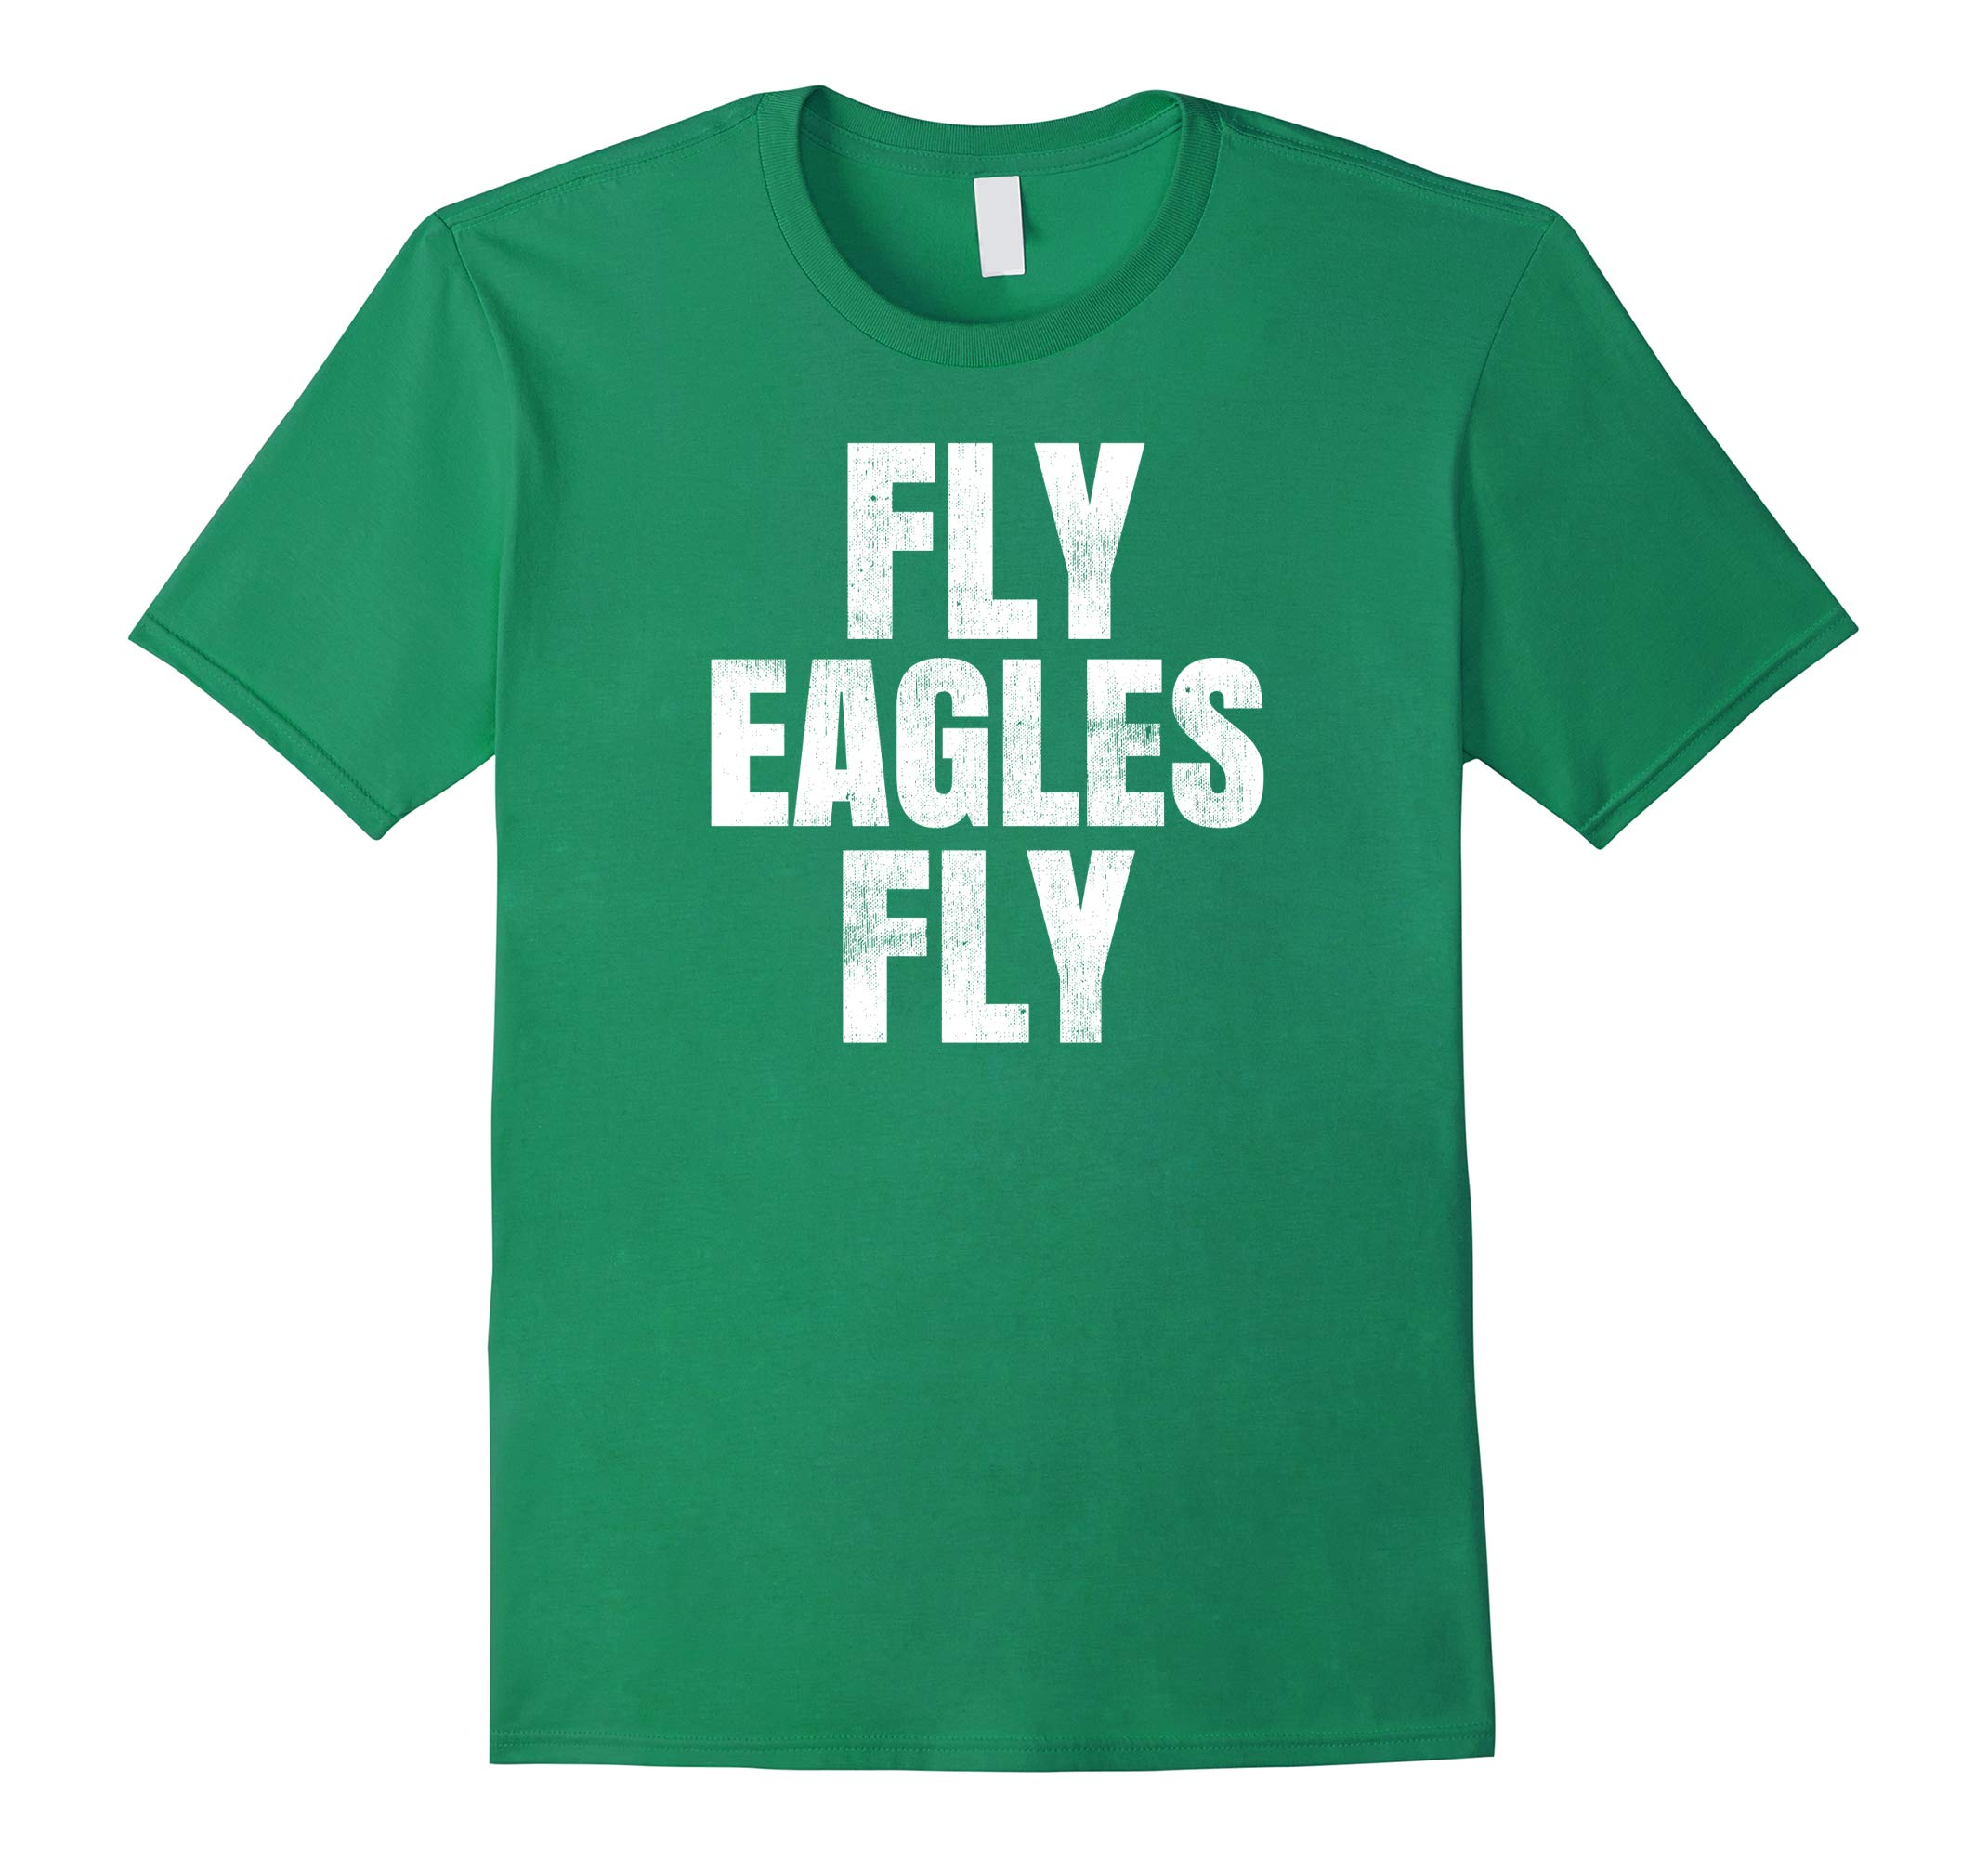 Fly Eagles Fly T Shirt ~ Flying Eagles TShirt Women Men Kids-RT